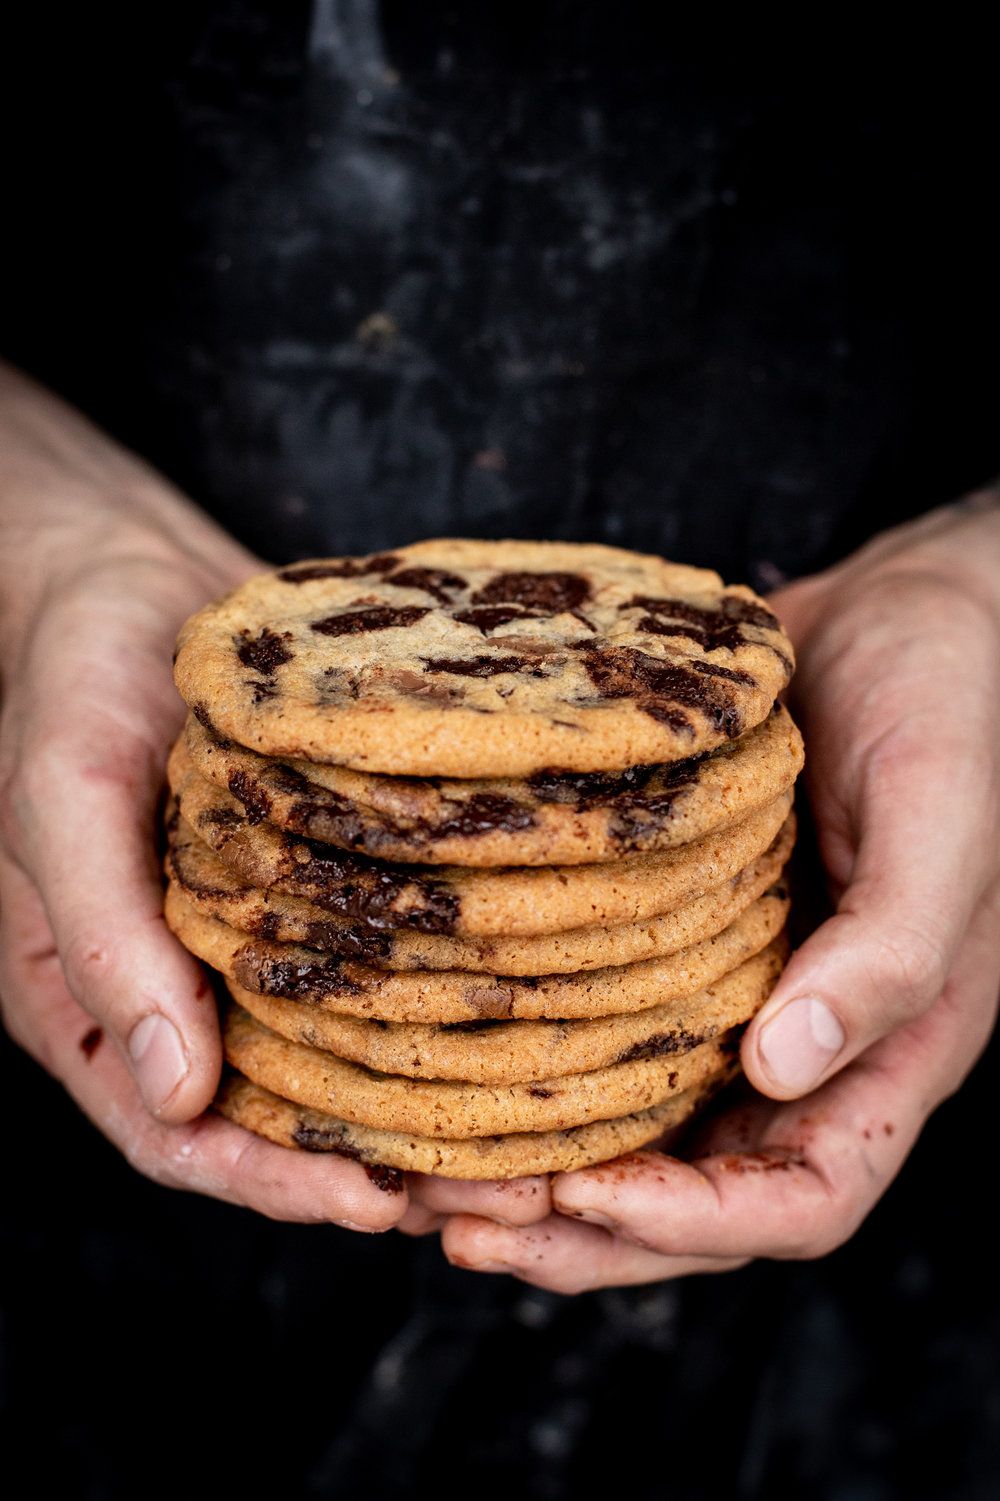 Chocolate chip cookie - butter, farine sugar, canesugar, sugar, wheat flour, eggs, baking soda, salt, dark chocolate, milk chocolate(VL, does not include nuts)2,50 ,- / pcs